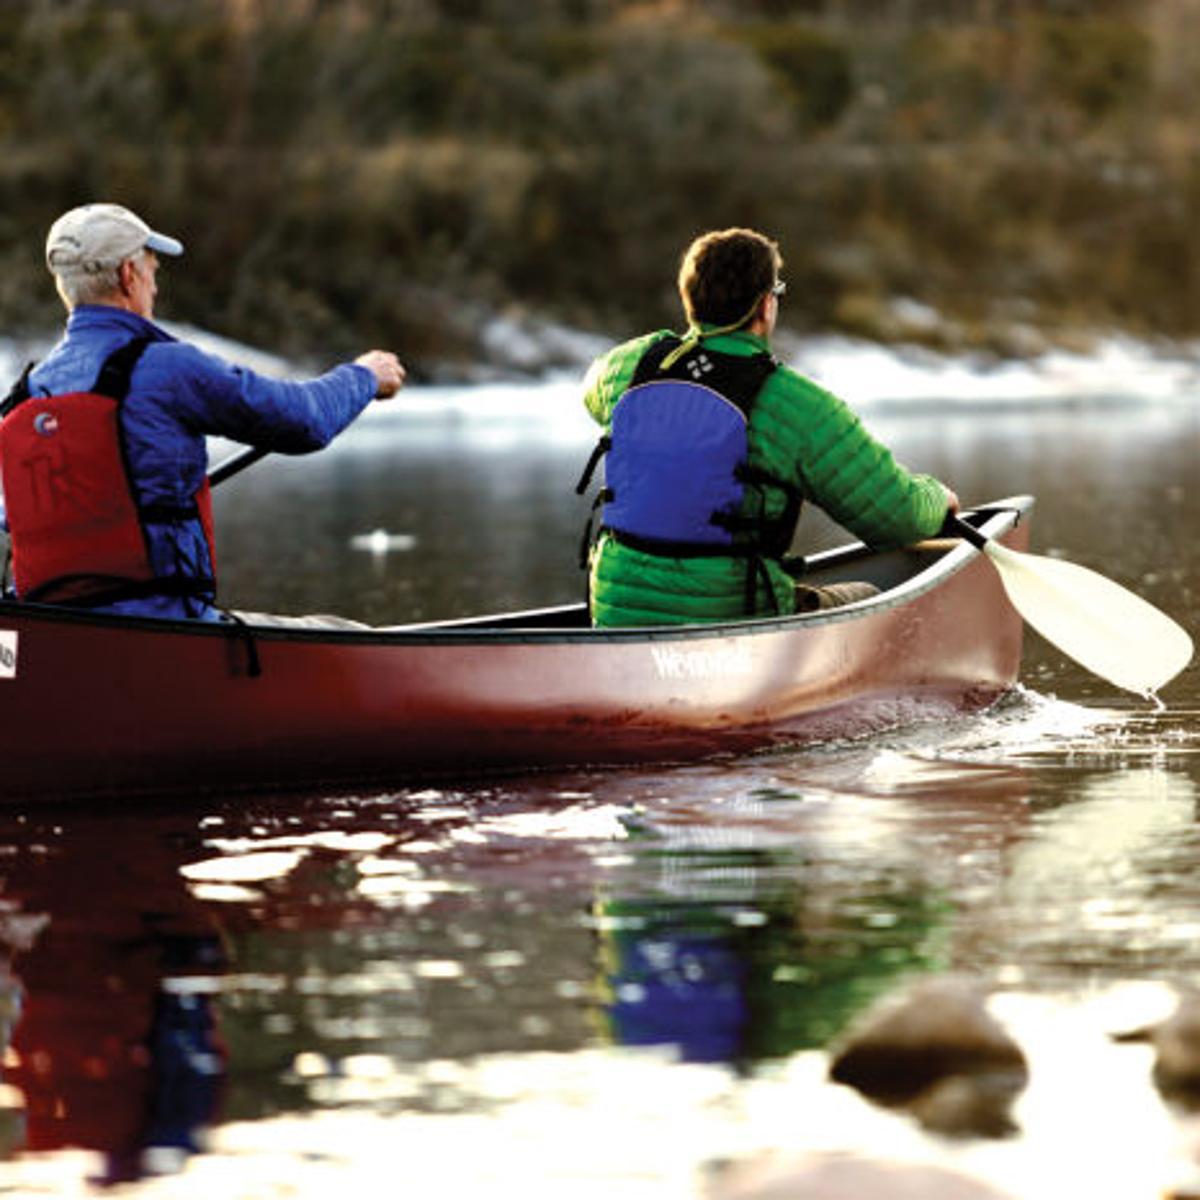 Canoe-makers losing key material for molding boats   Outdoors